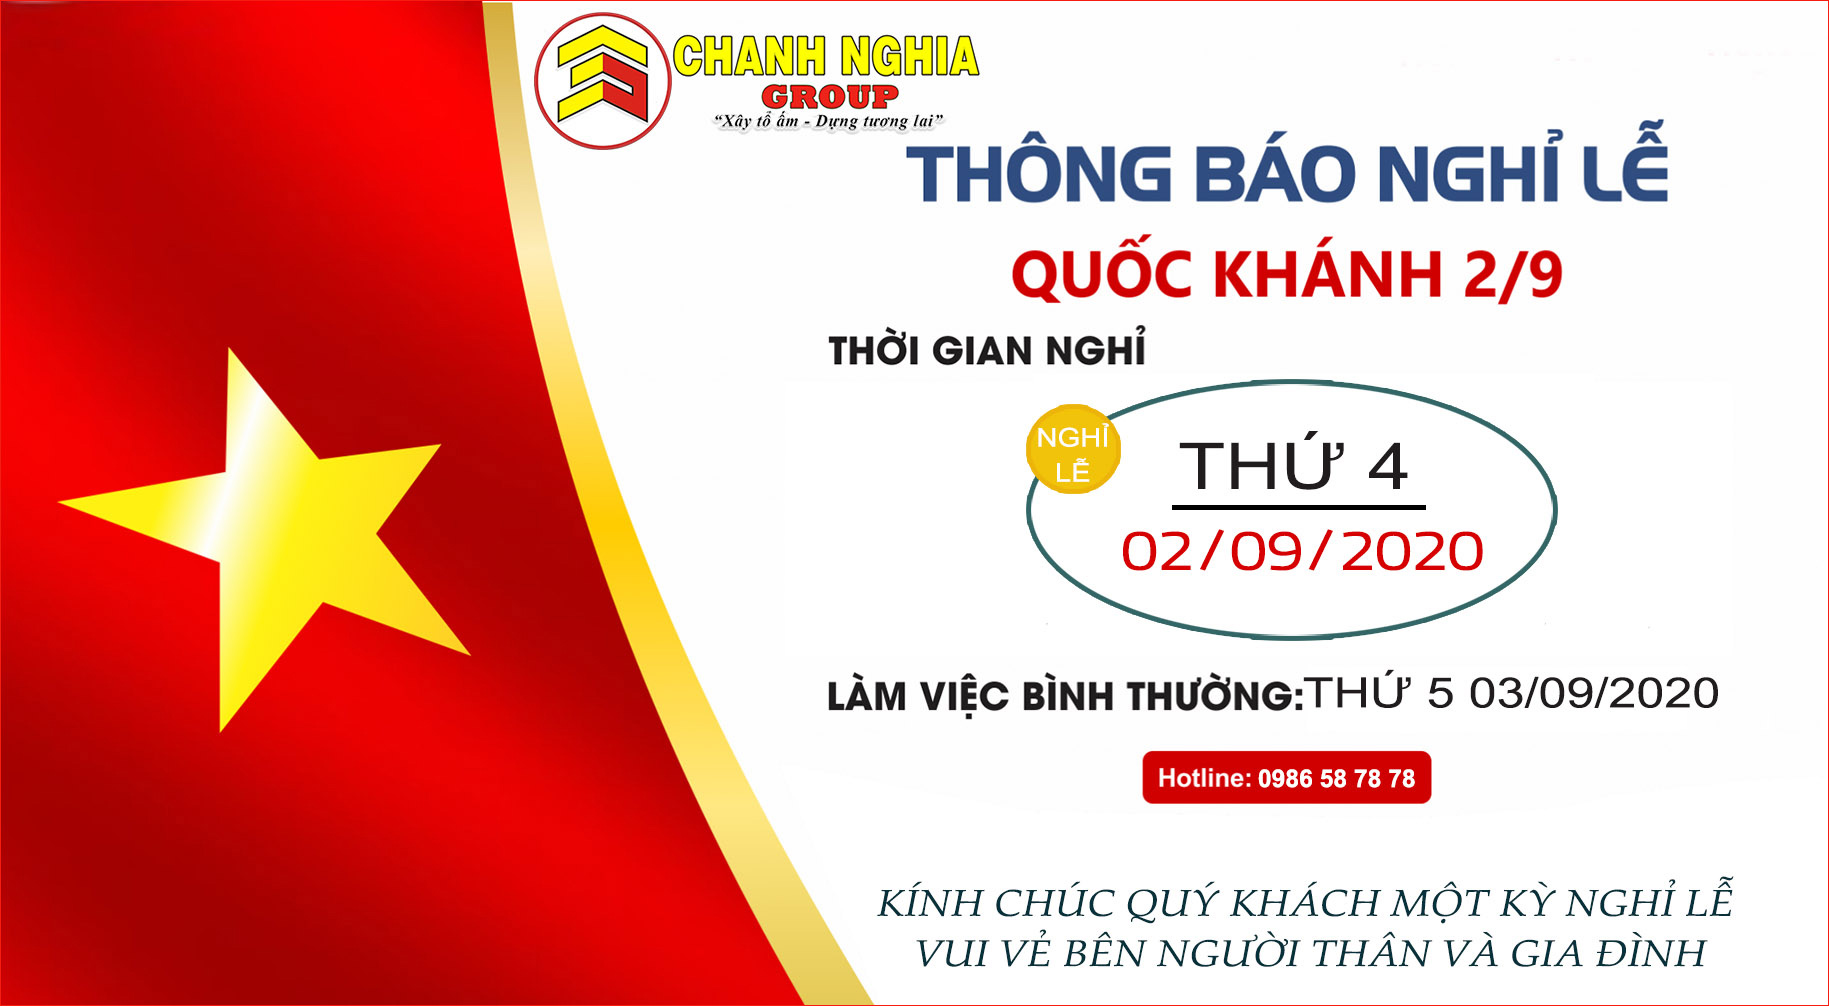 nghi-le-quoc-khanh-chanh-nghia-group